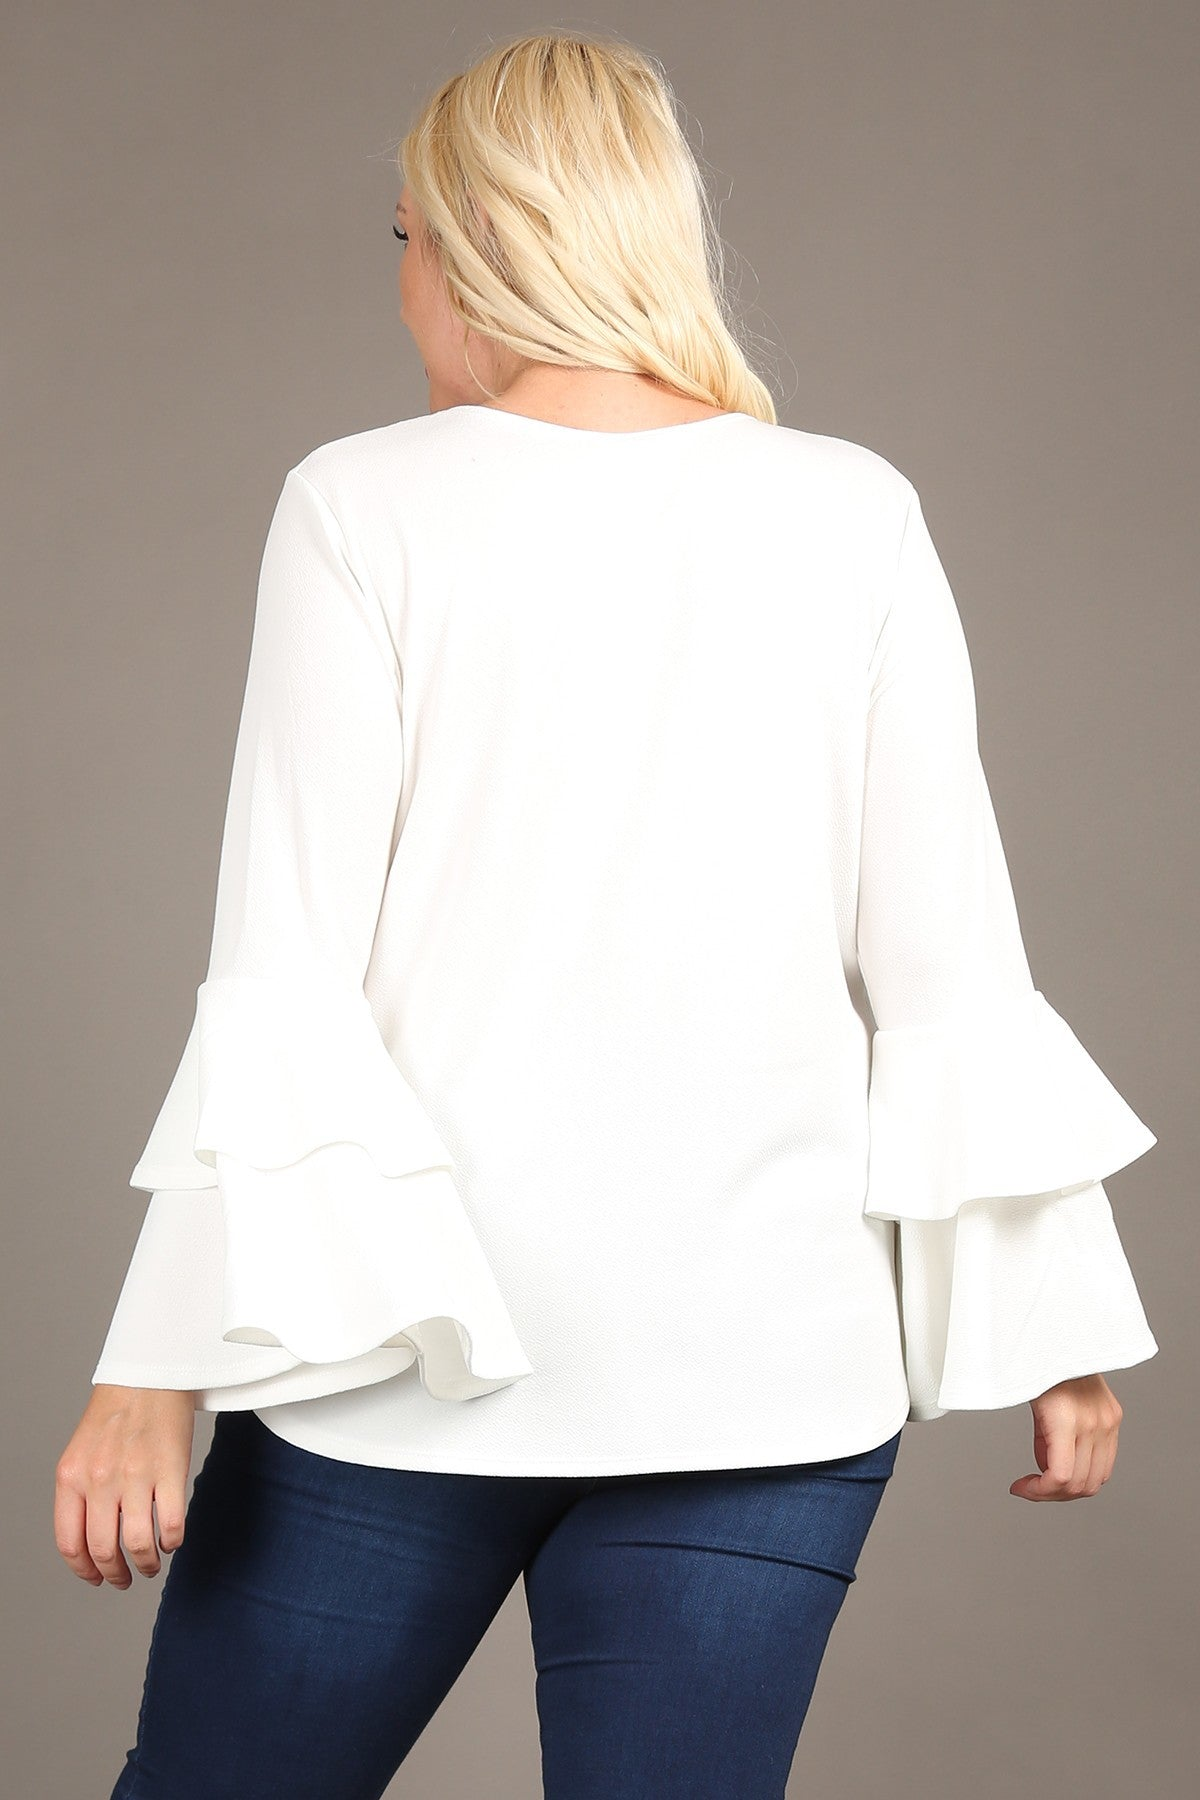 Winter White Plus Top